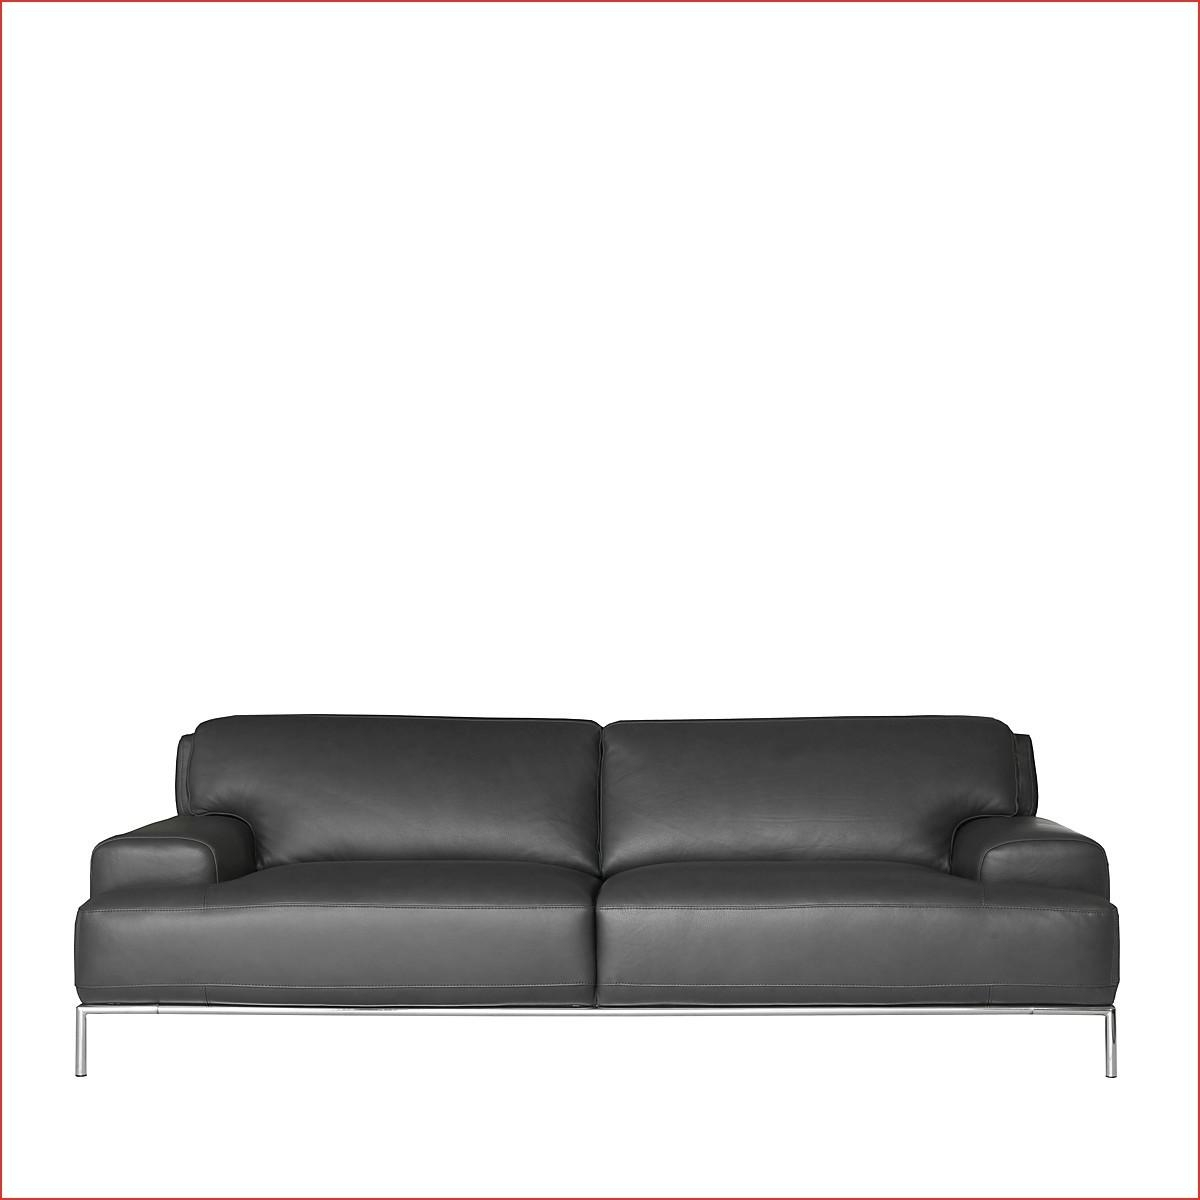 20 Collection Of Divani Chateau D Ax Leather Sofas Sofa